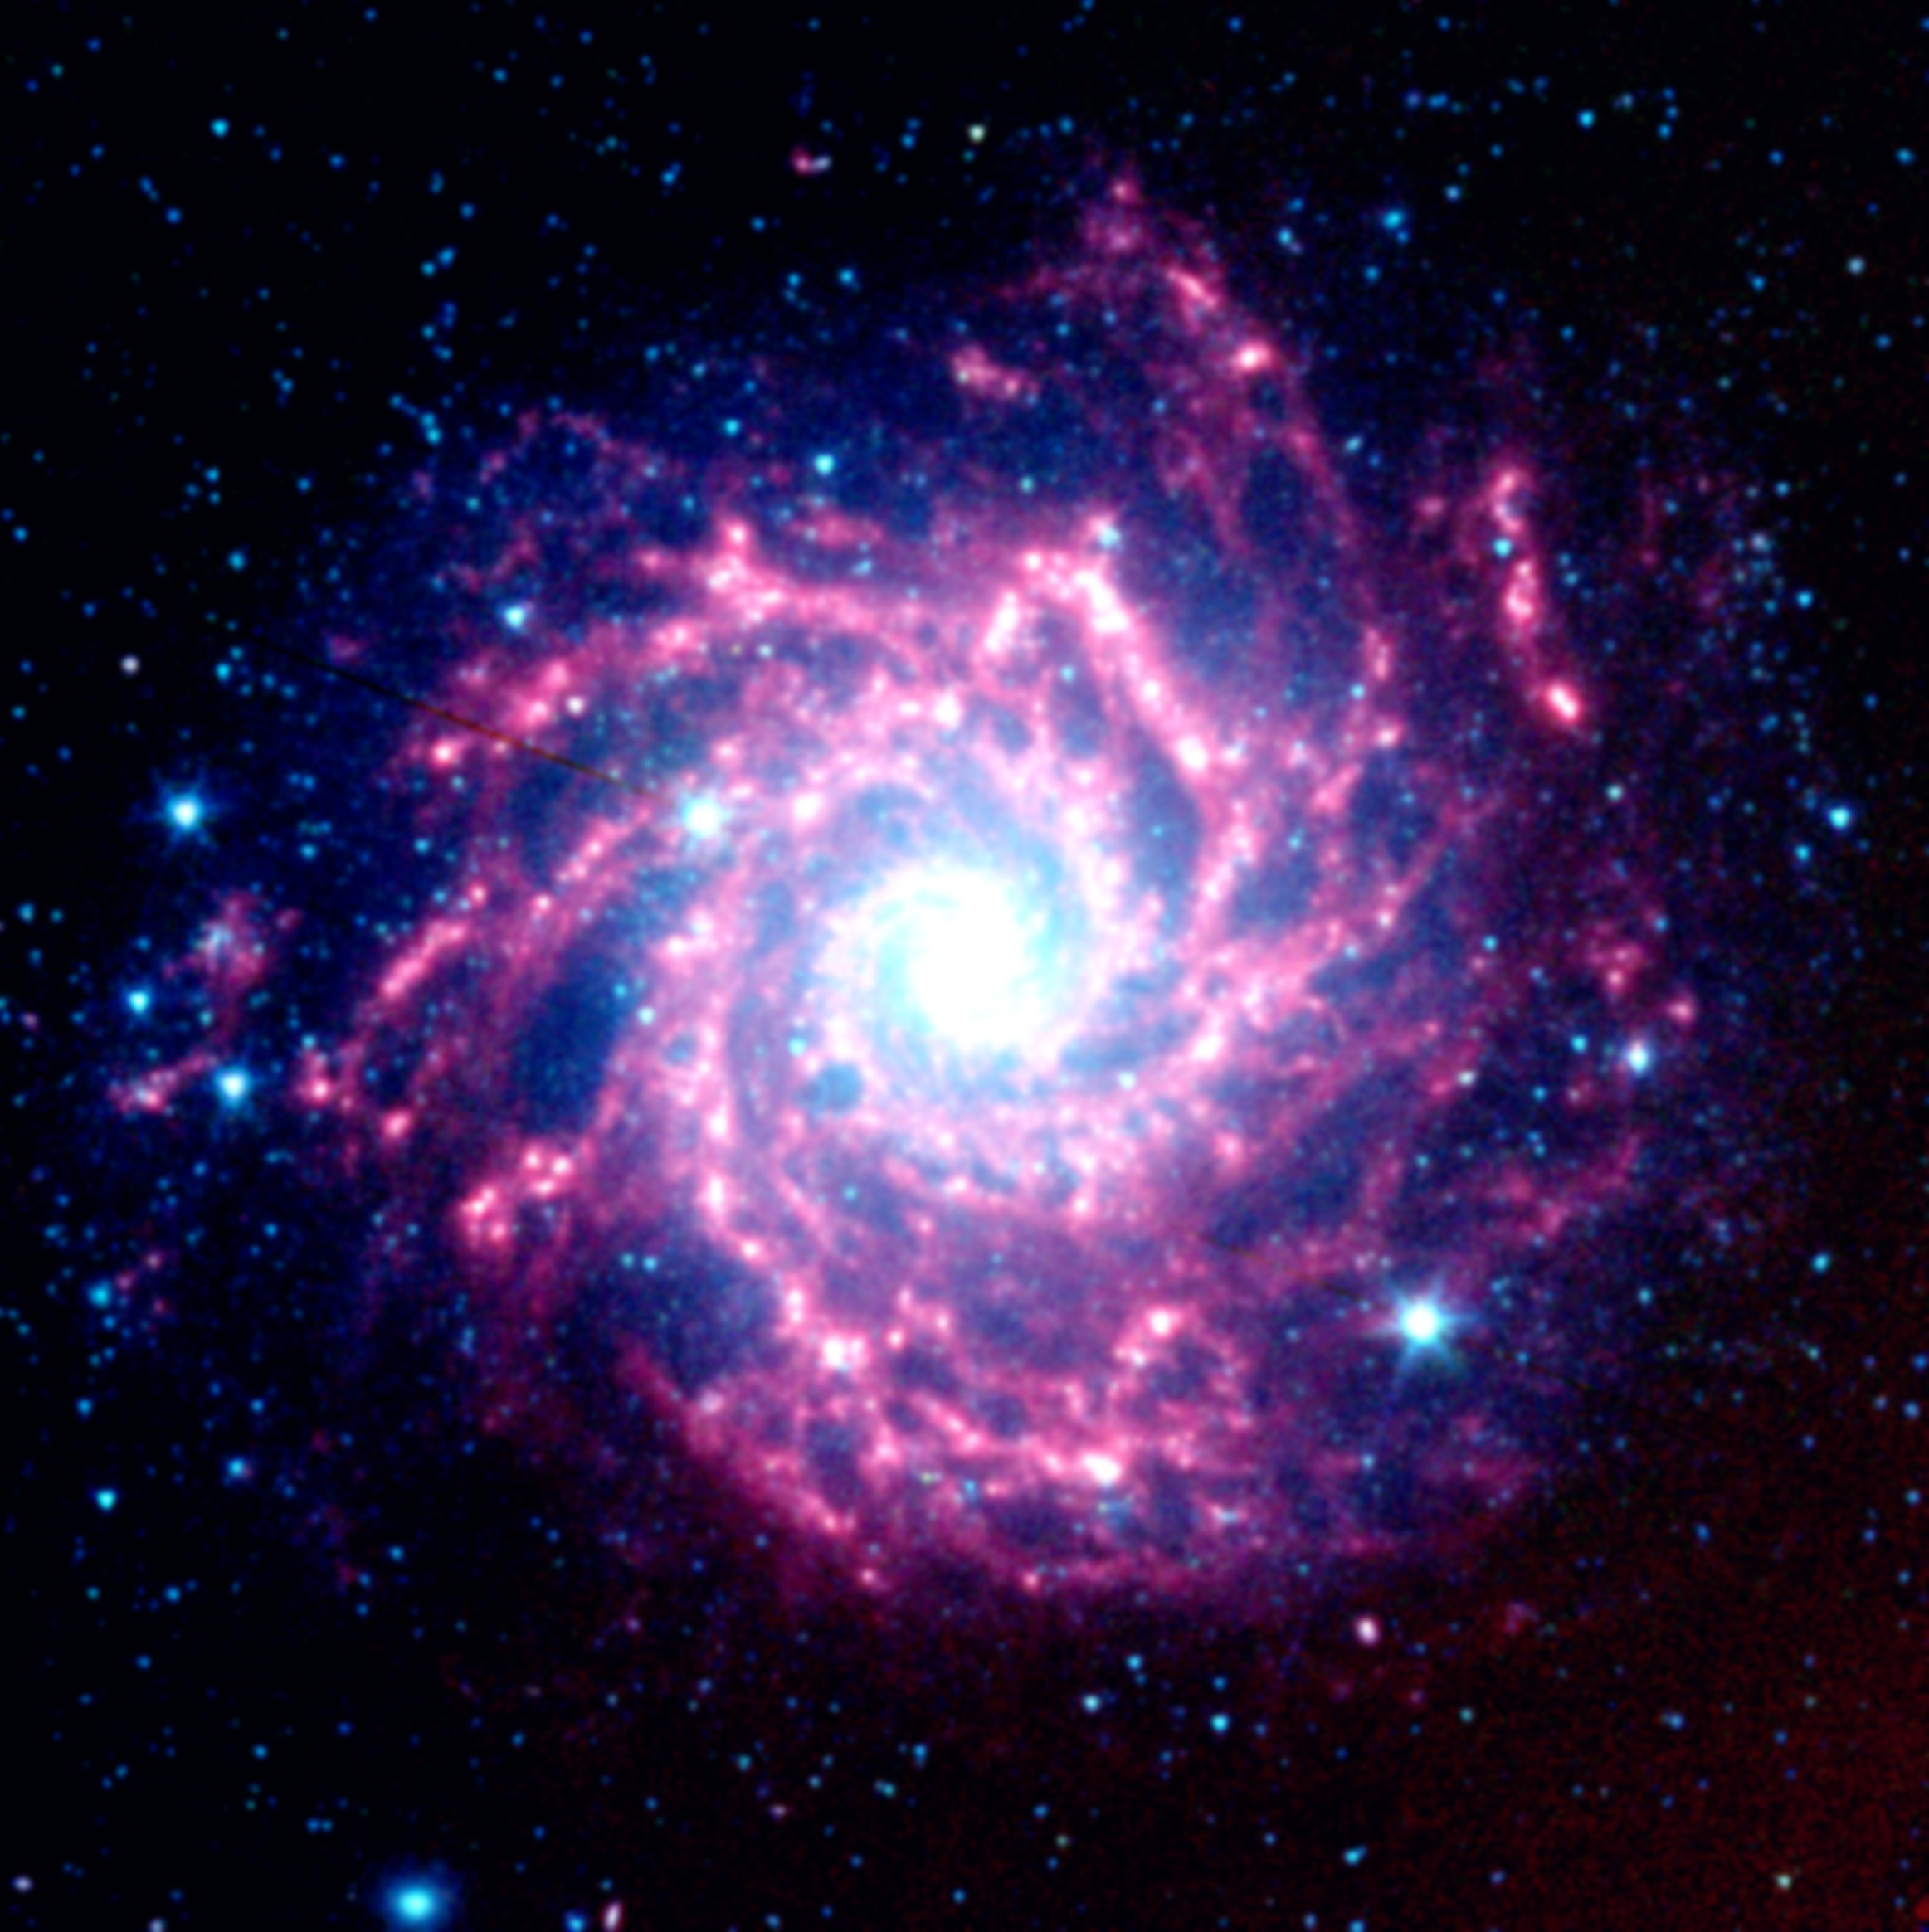 File nasa 39 s spitzer space telescope view of - Spitzer space telescope wallpaper ...